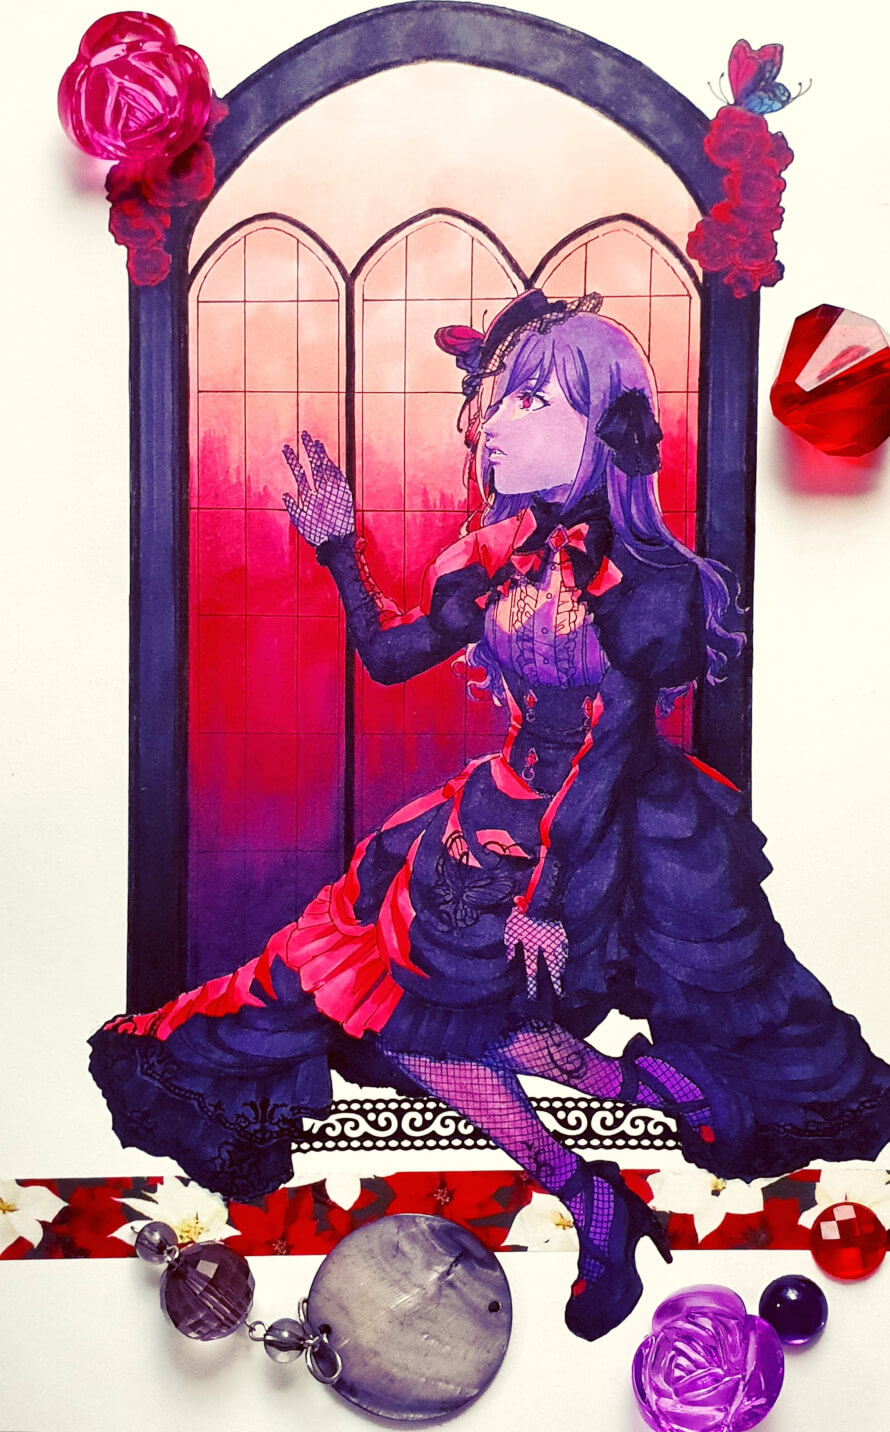 limited ranko fanart, another inktober entry! you can see more shots of the piece in either of the...